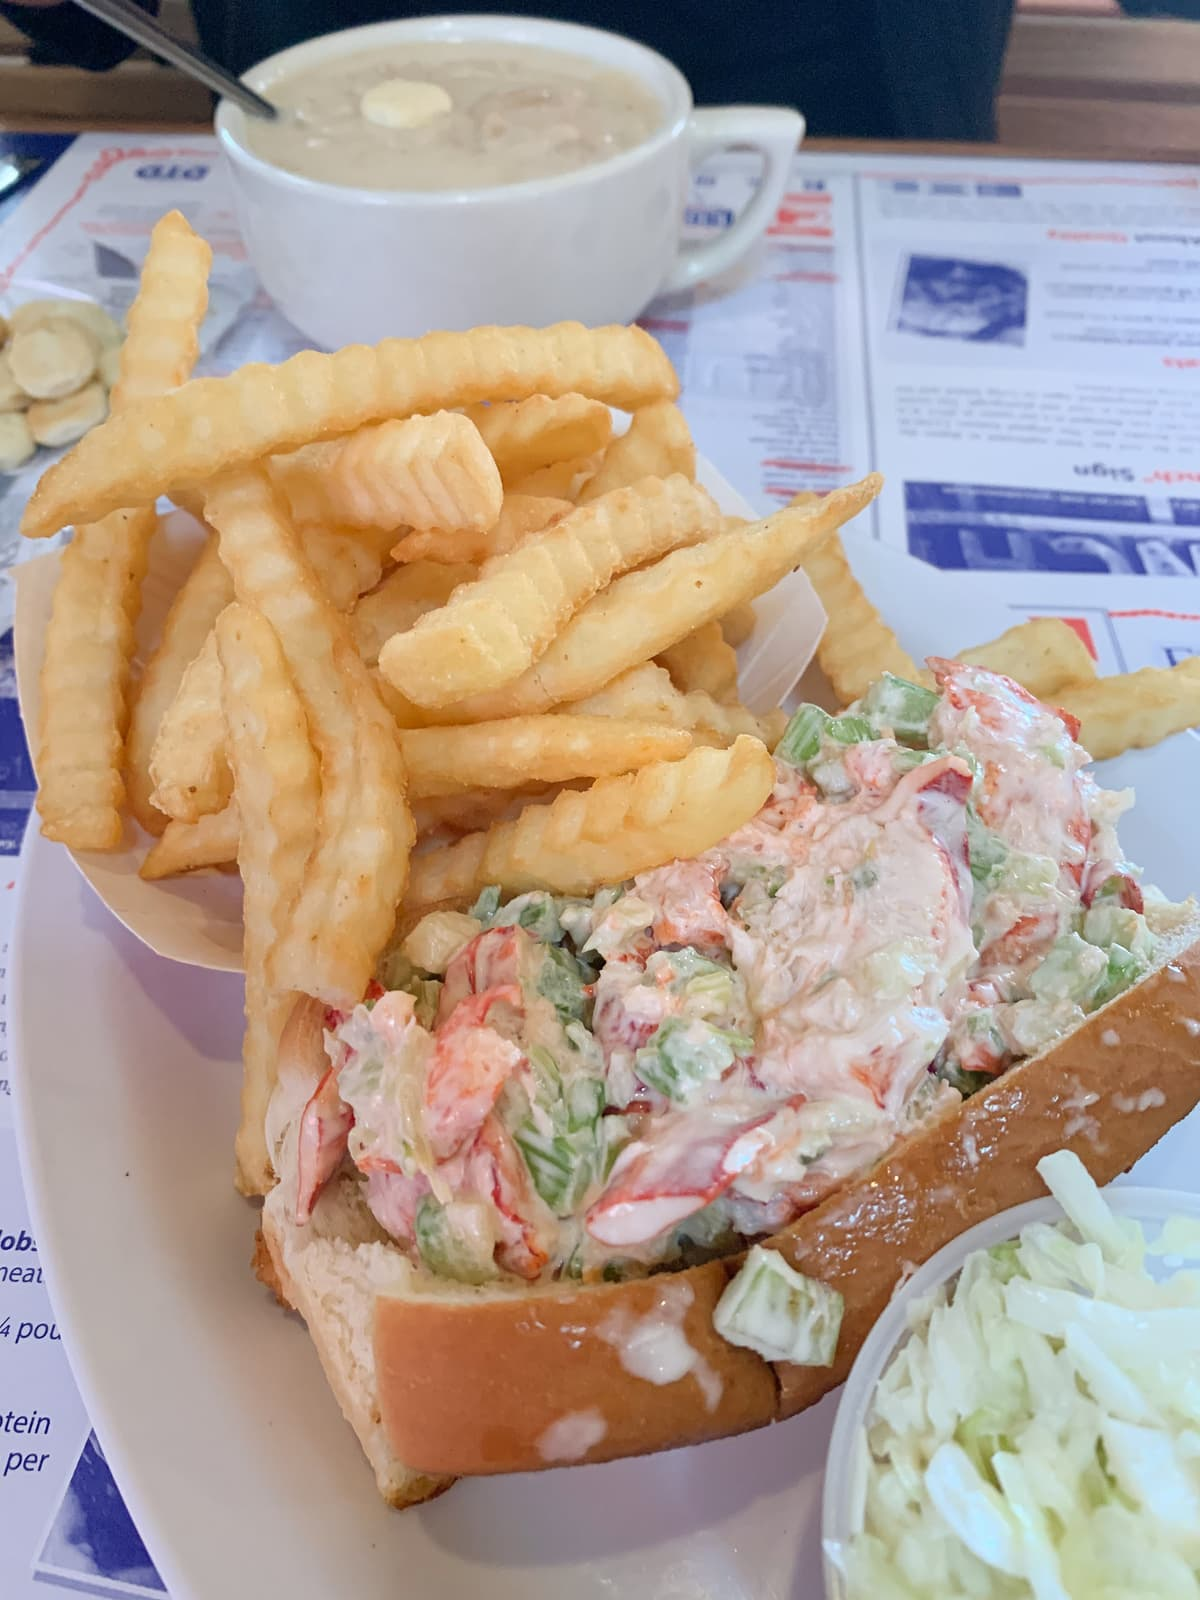 Lobster roll next to lots of crinkly fries